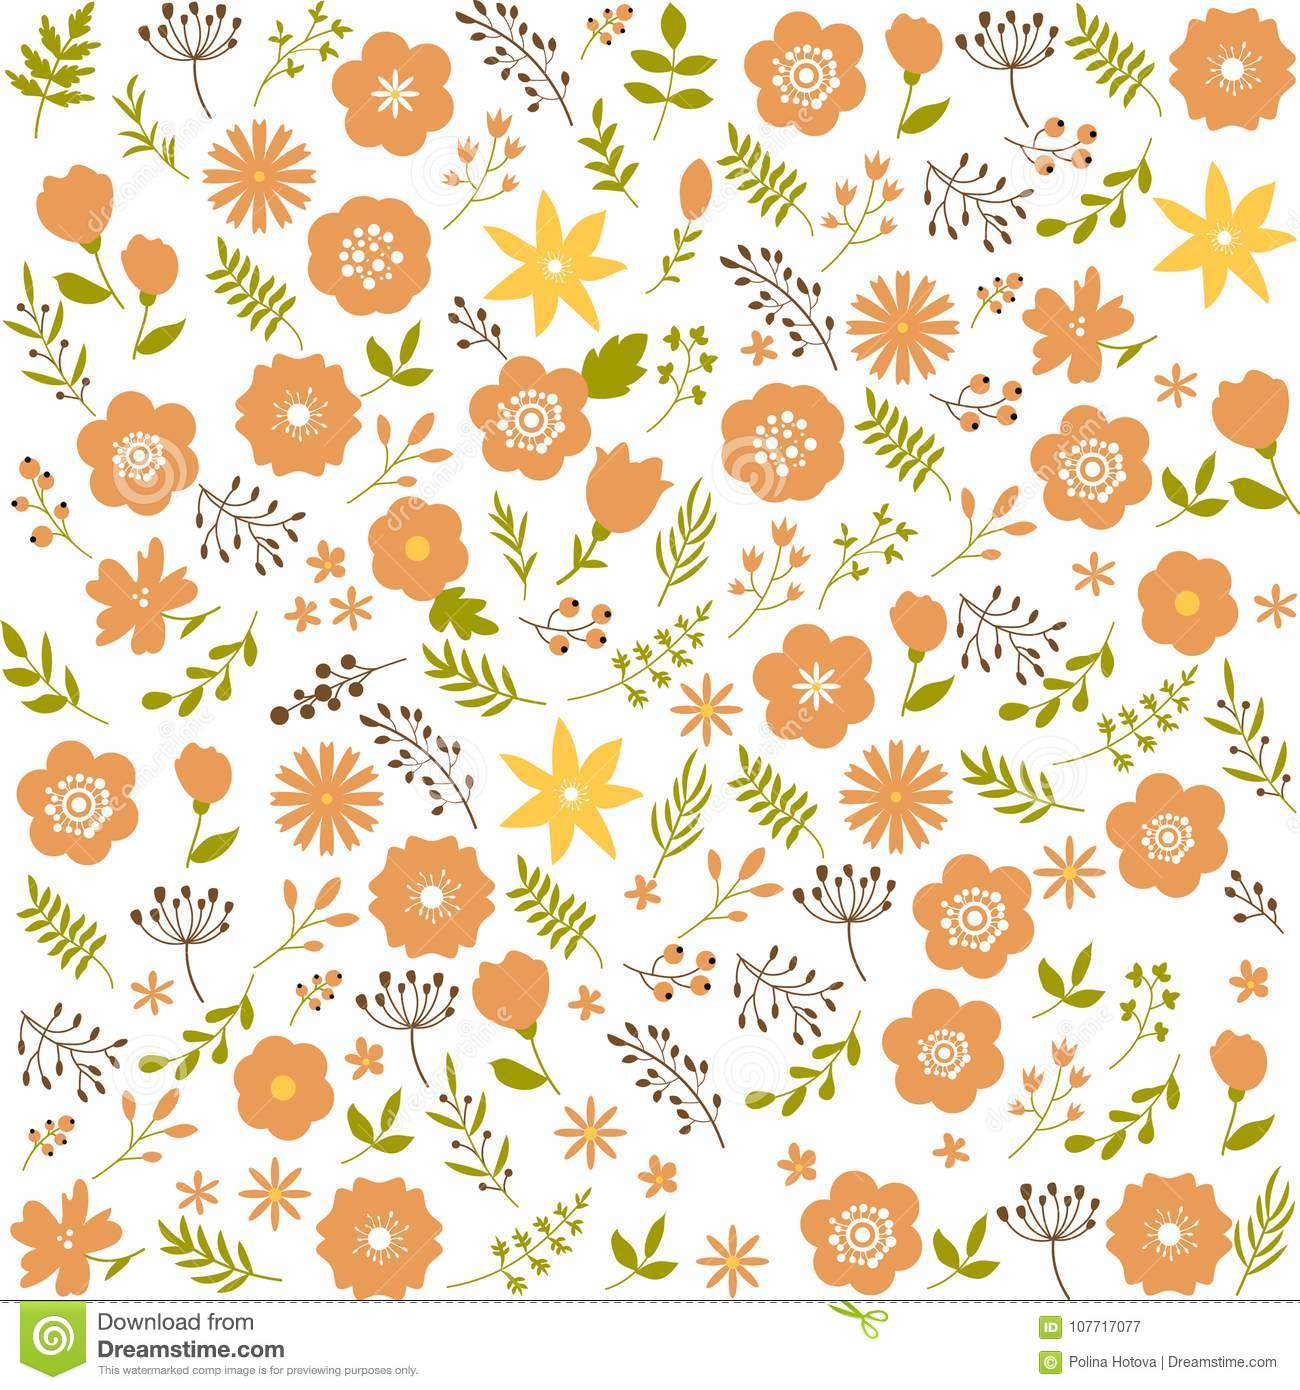 Floral Seamless Pattern Background Spring Design Decorative Texture Wallpaper Cute Flowers Leafs Stylilezd In Folk Ethnic Artwork